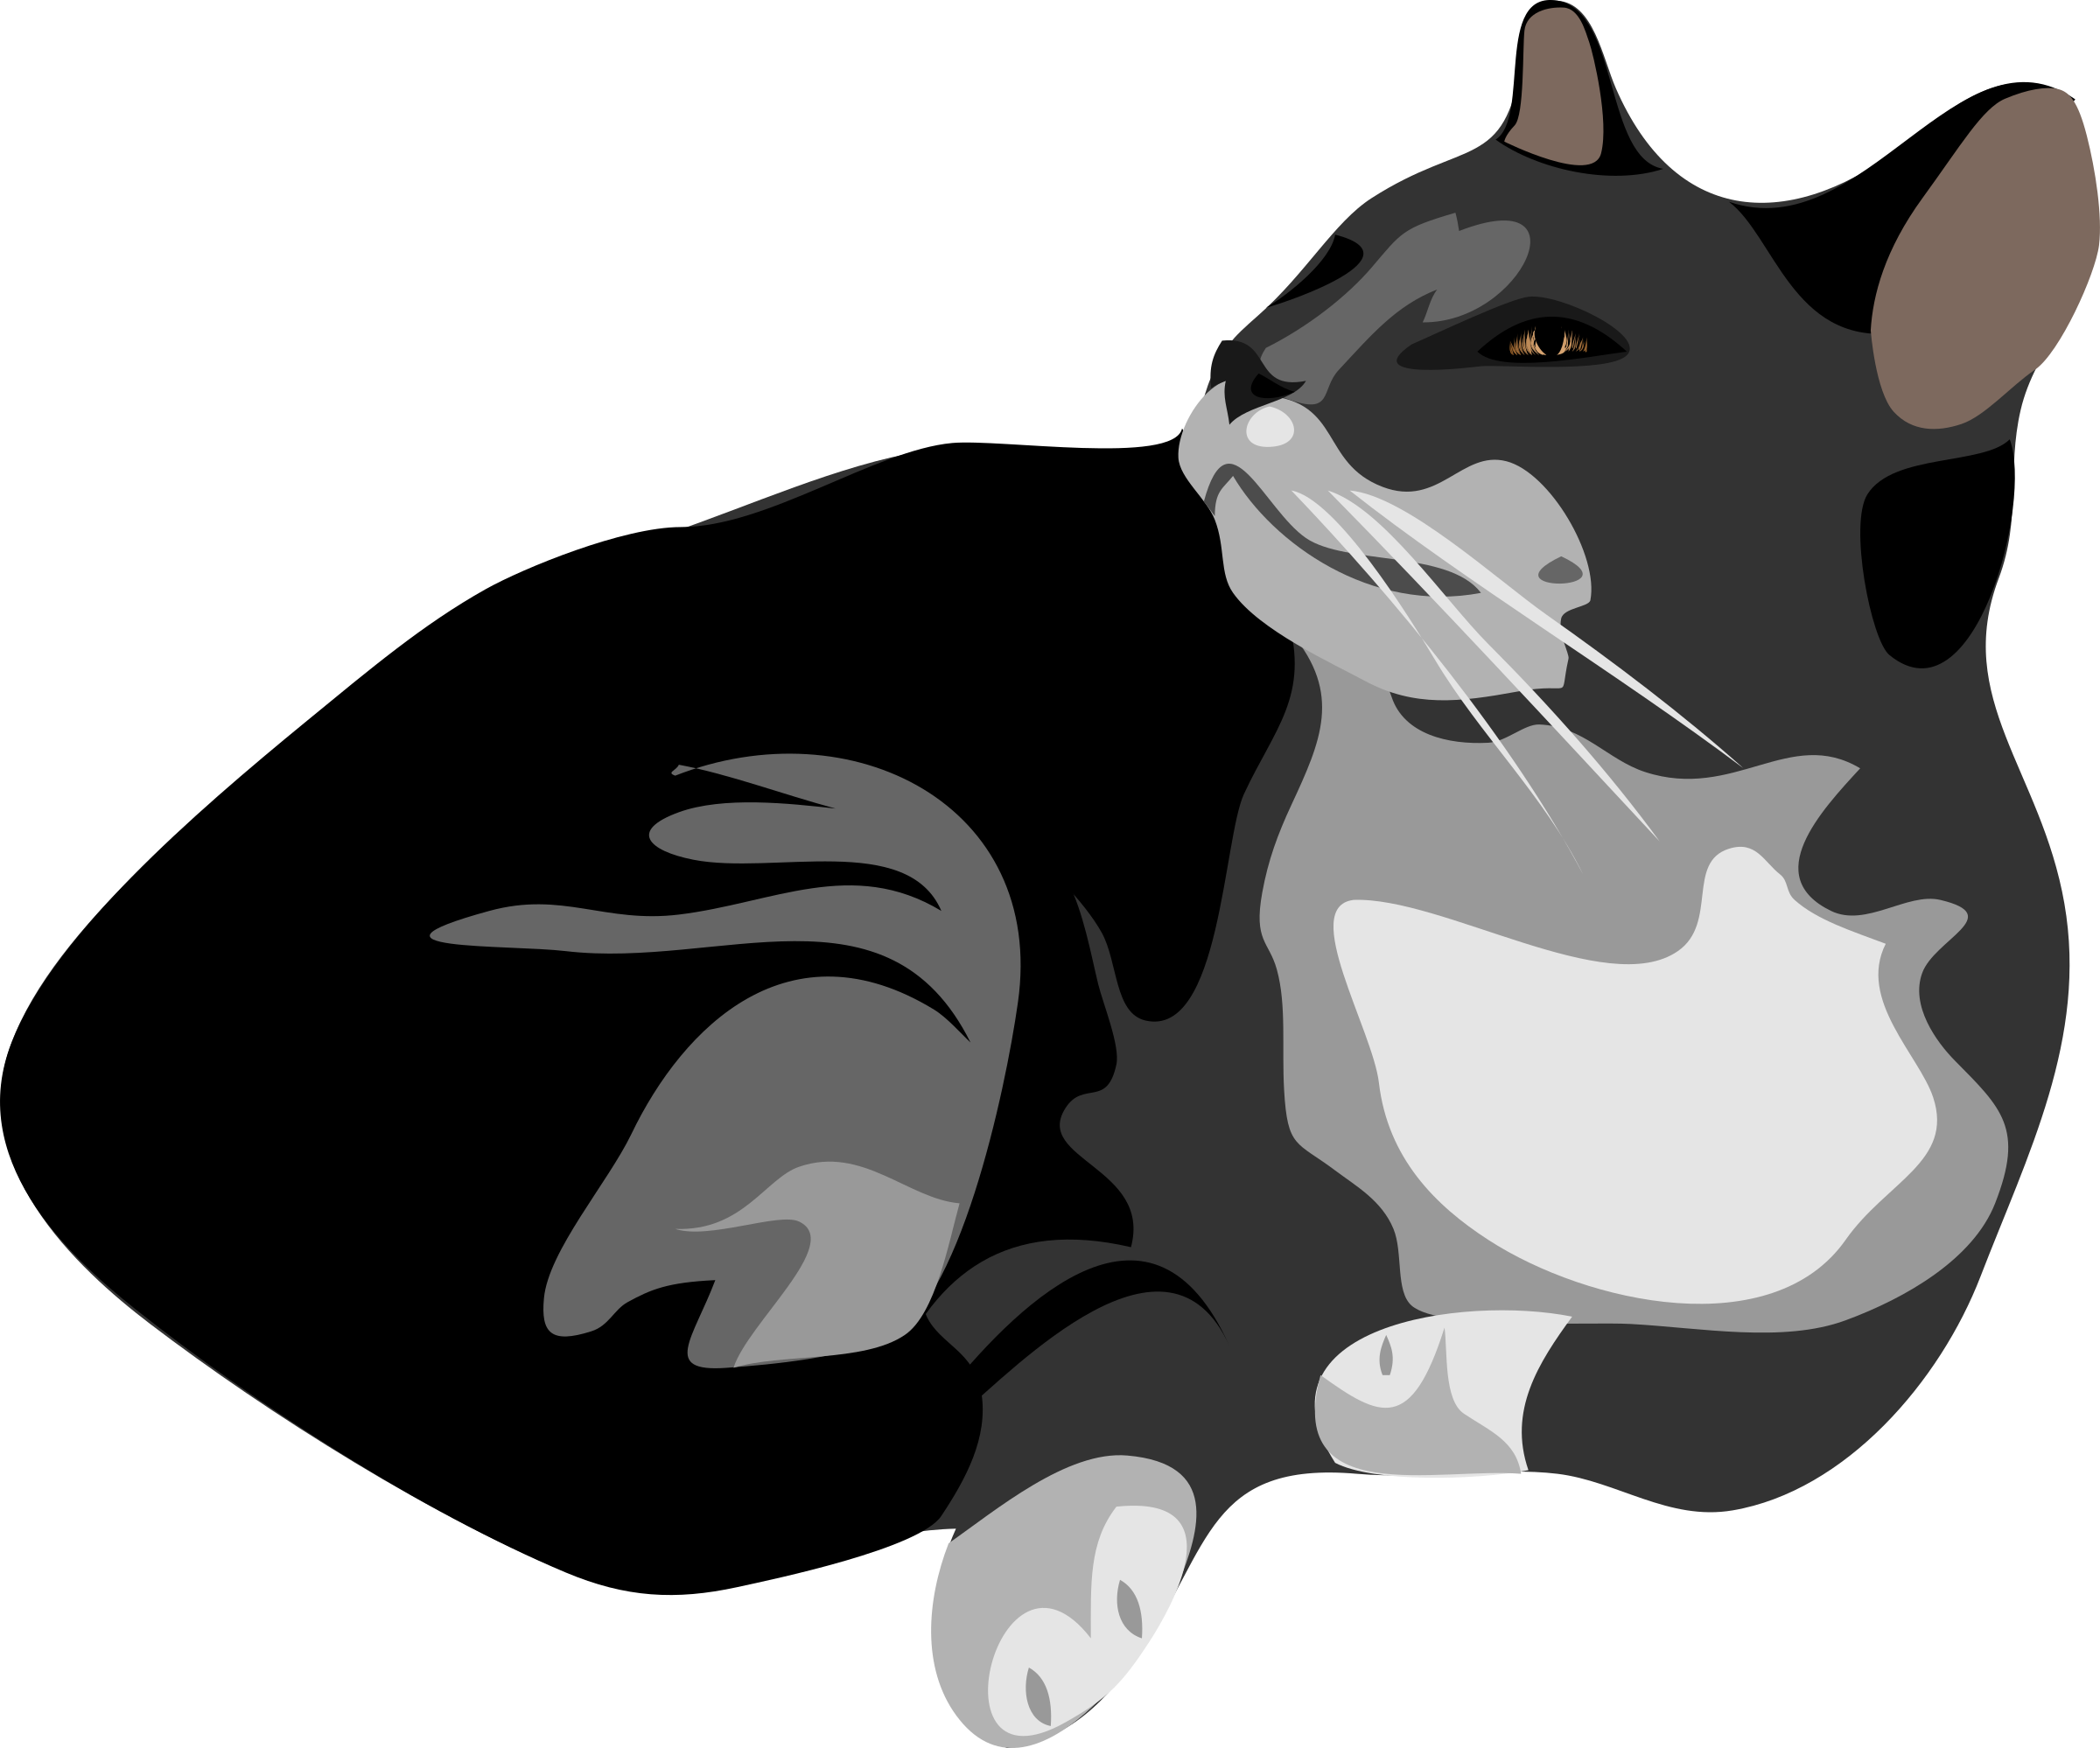 Cat clipart vector graphic free library no black cat clipart - Clipground graphic free library